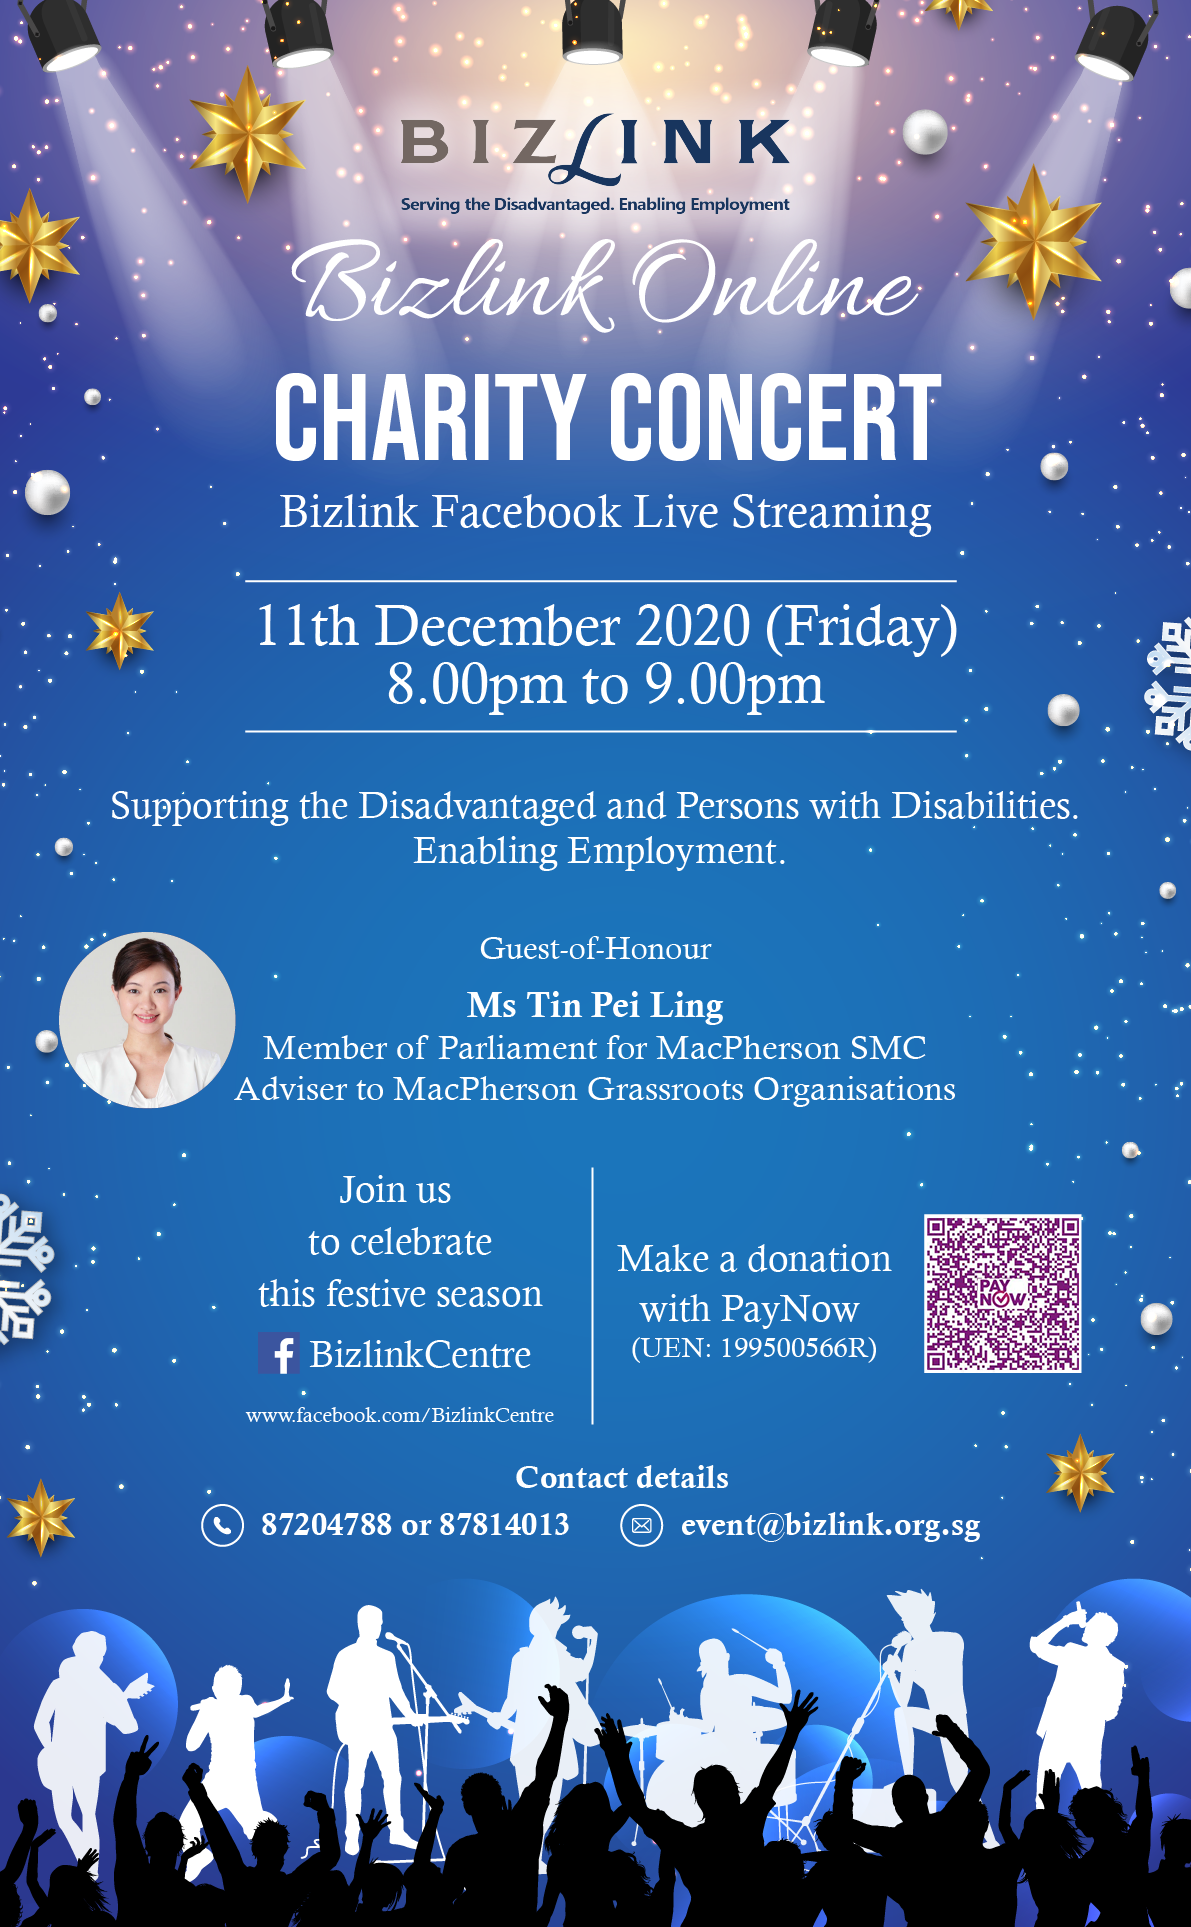 Bizlink Online Charity Concert Facebook Live Streaming 11 December 2020 Guest of Honour Ms Tin Pei Ling MP for Macpherson SMC Join us to celebrate this festive season at facebook.com/BizlinkCentre Contact Details 87204788 or 87814013 event@bizlink.org.sg